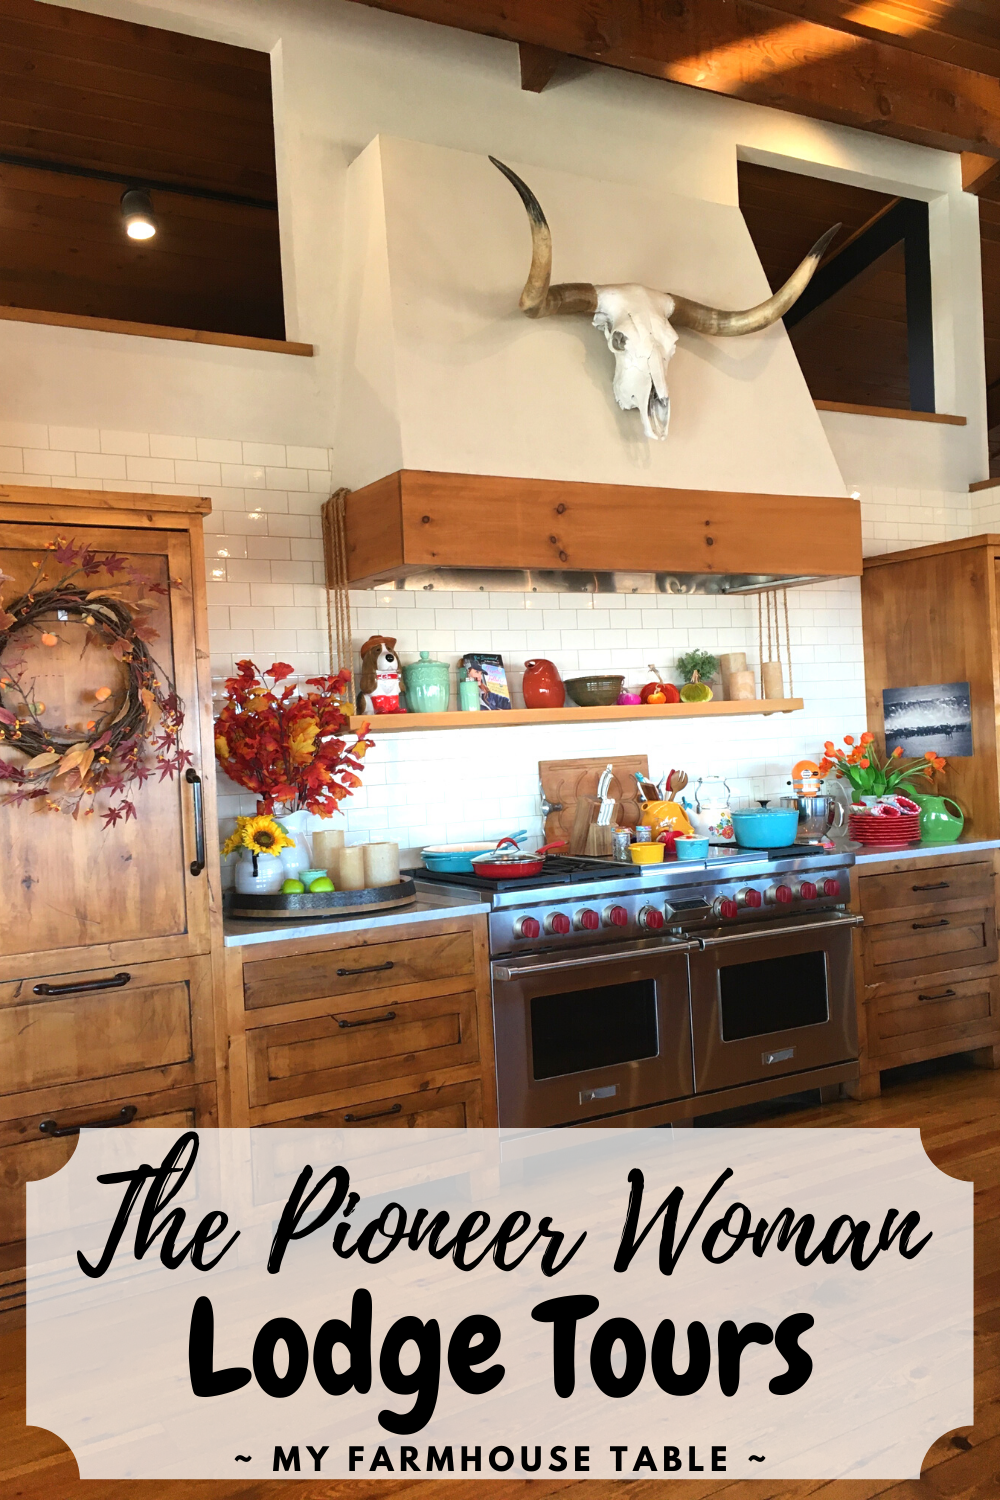 The Pioneer Woman Lodge Tour How to Visit Ree Drummond Lodge The Drummond Ranch in Pawhuska Oklahoma The Pioneer Woman Show Filming Location My Farmhouse Table